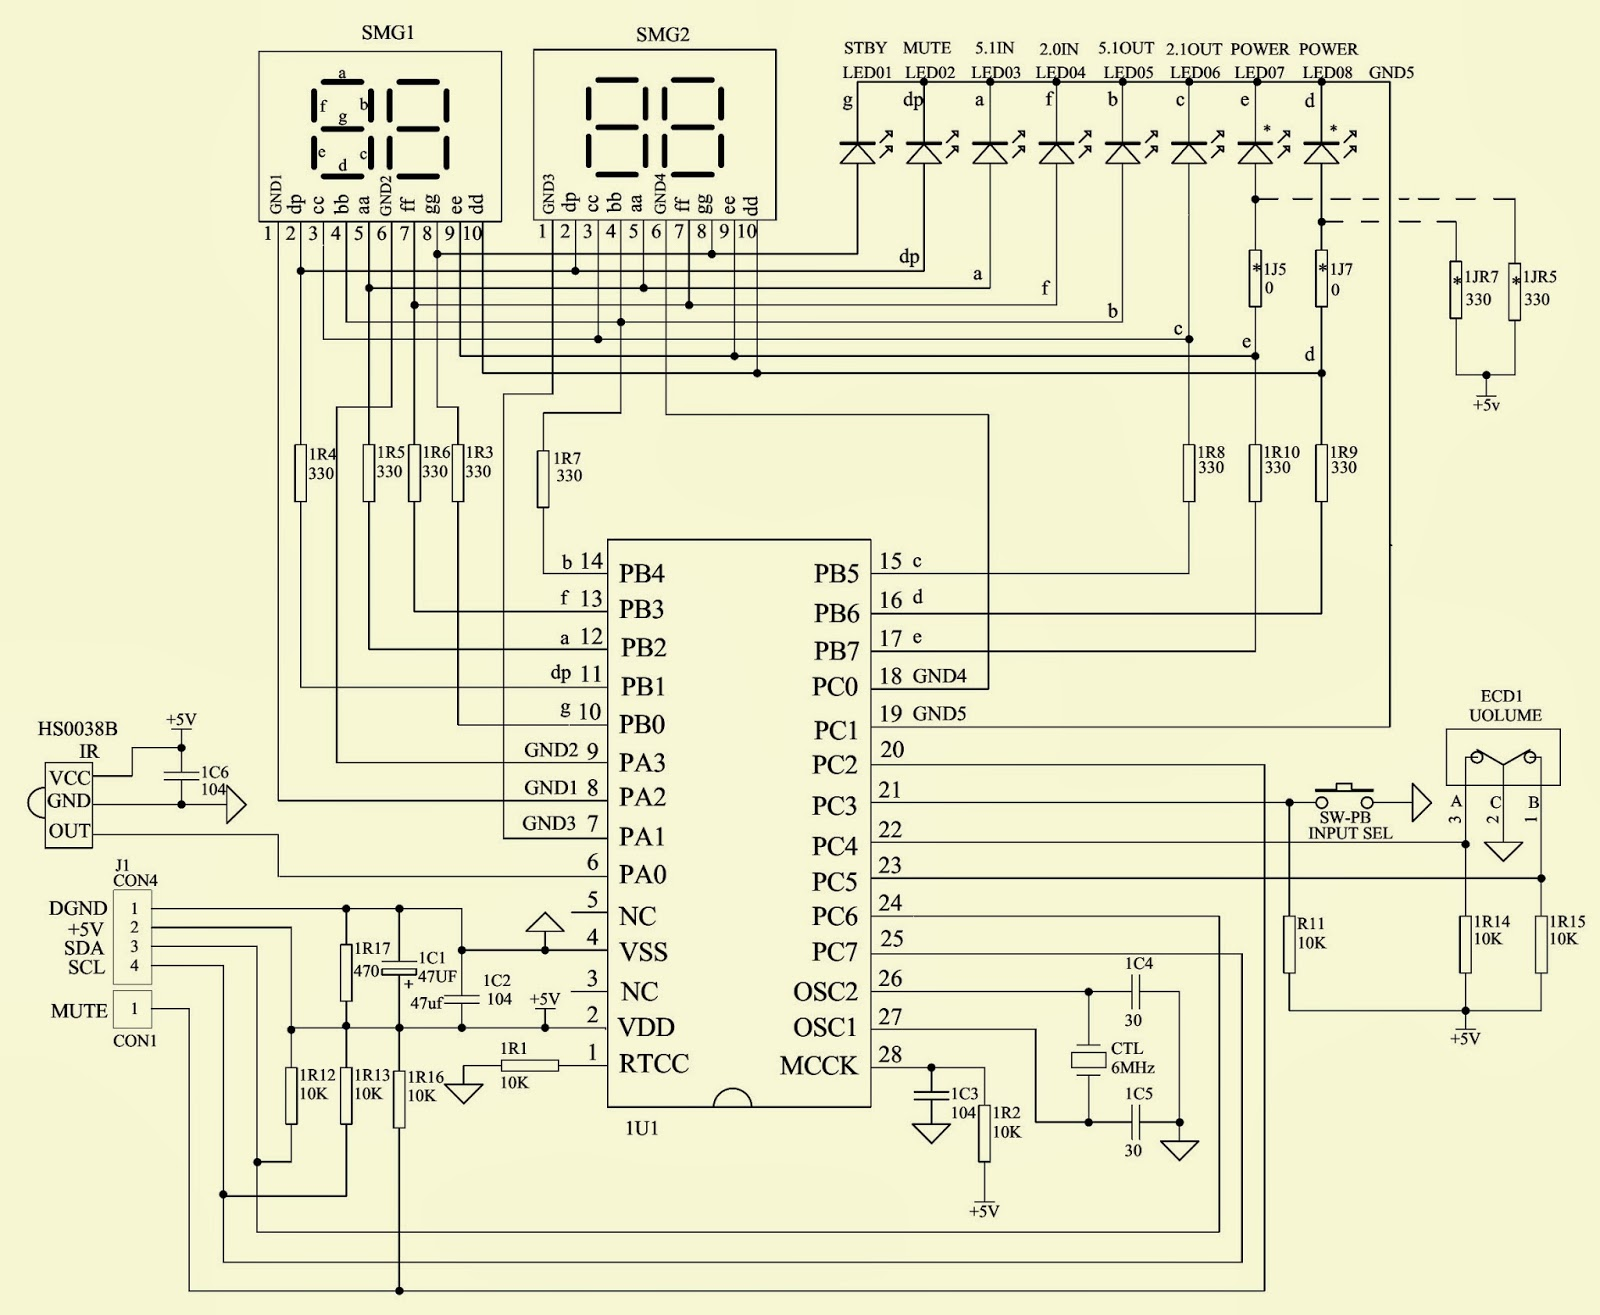 Semiconductor Symbols moreover Easy   Wiring as well Panasonic Ag 520vdh Tvdvdvcr further Scr Triggering Using Ujt also Proscan Crk83 Ml1 Remote Control Setup. on electronic circuit diagrams